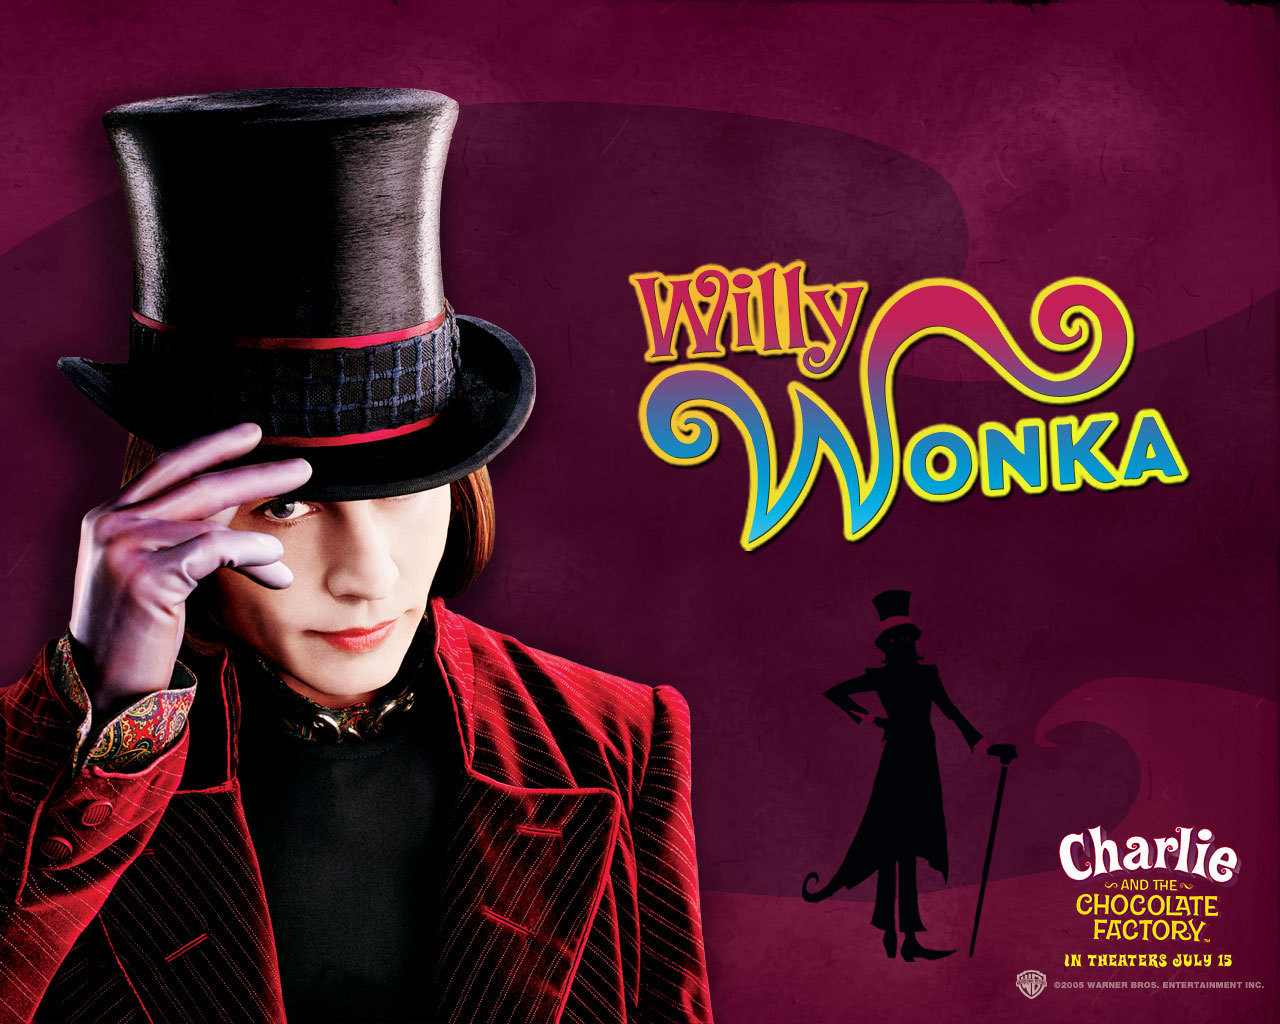 http://1.bp.blogspot.com/-cxhCSRv0OFk/UBFltkbMUkI/AAAAAAAAEao/n_ODBDBUeU8/s1600/Willy-Wonka-johnny-depps-movie-characters-8955323-1280-1024.jpg